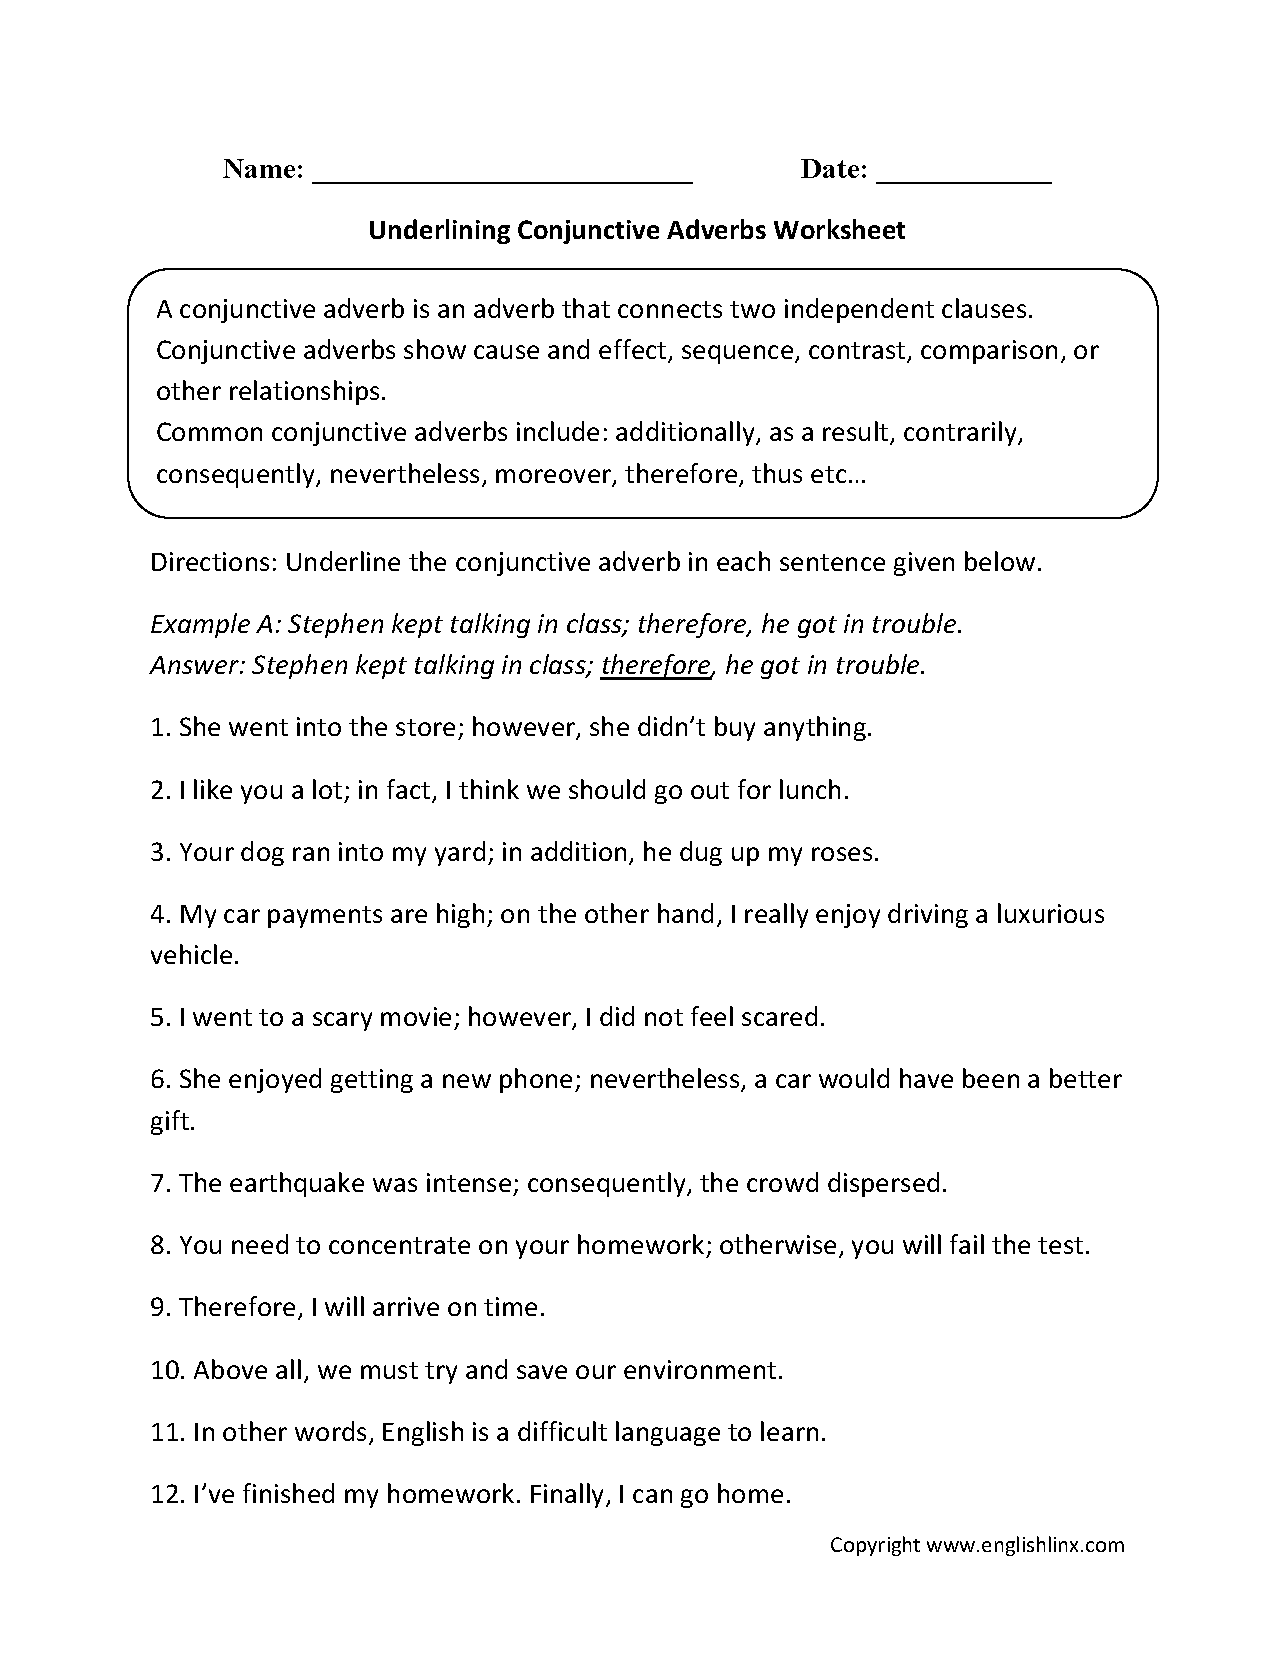 Worksheets Fanboys Grammar Worksheet underlining conjunctive adverbs worksheet conjunctions pinterest this directs the student to identify and unerline adverb in each given sentence